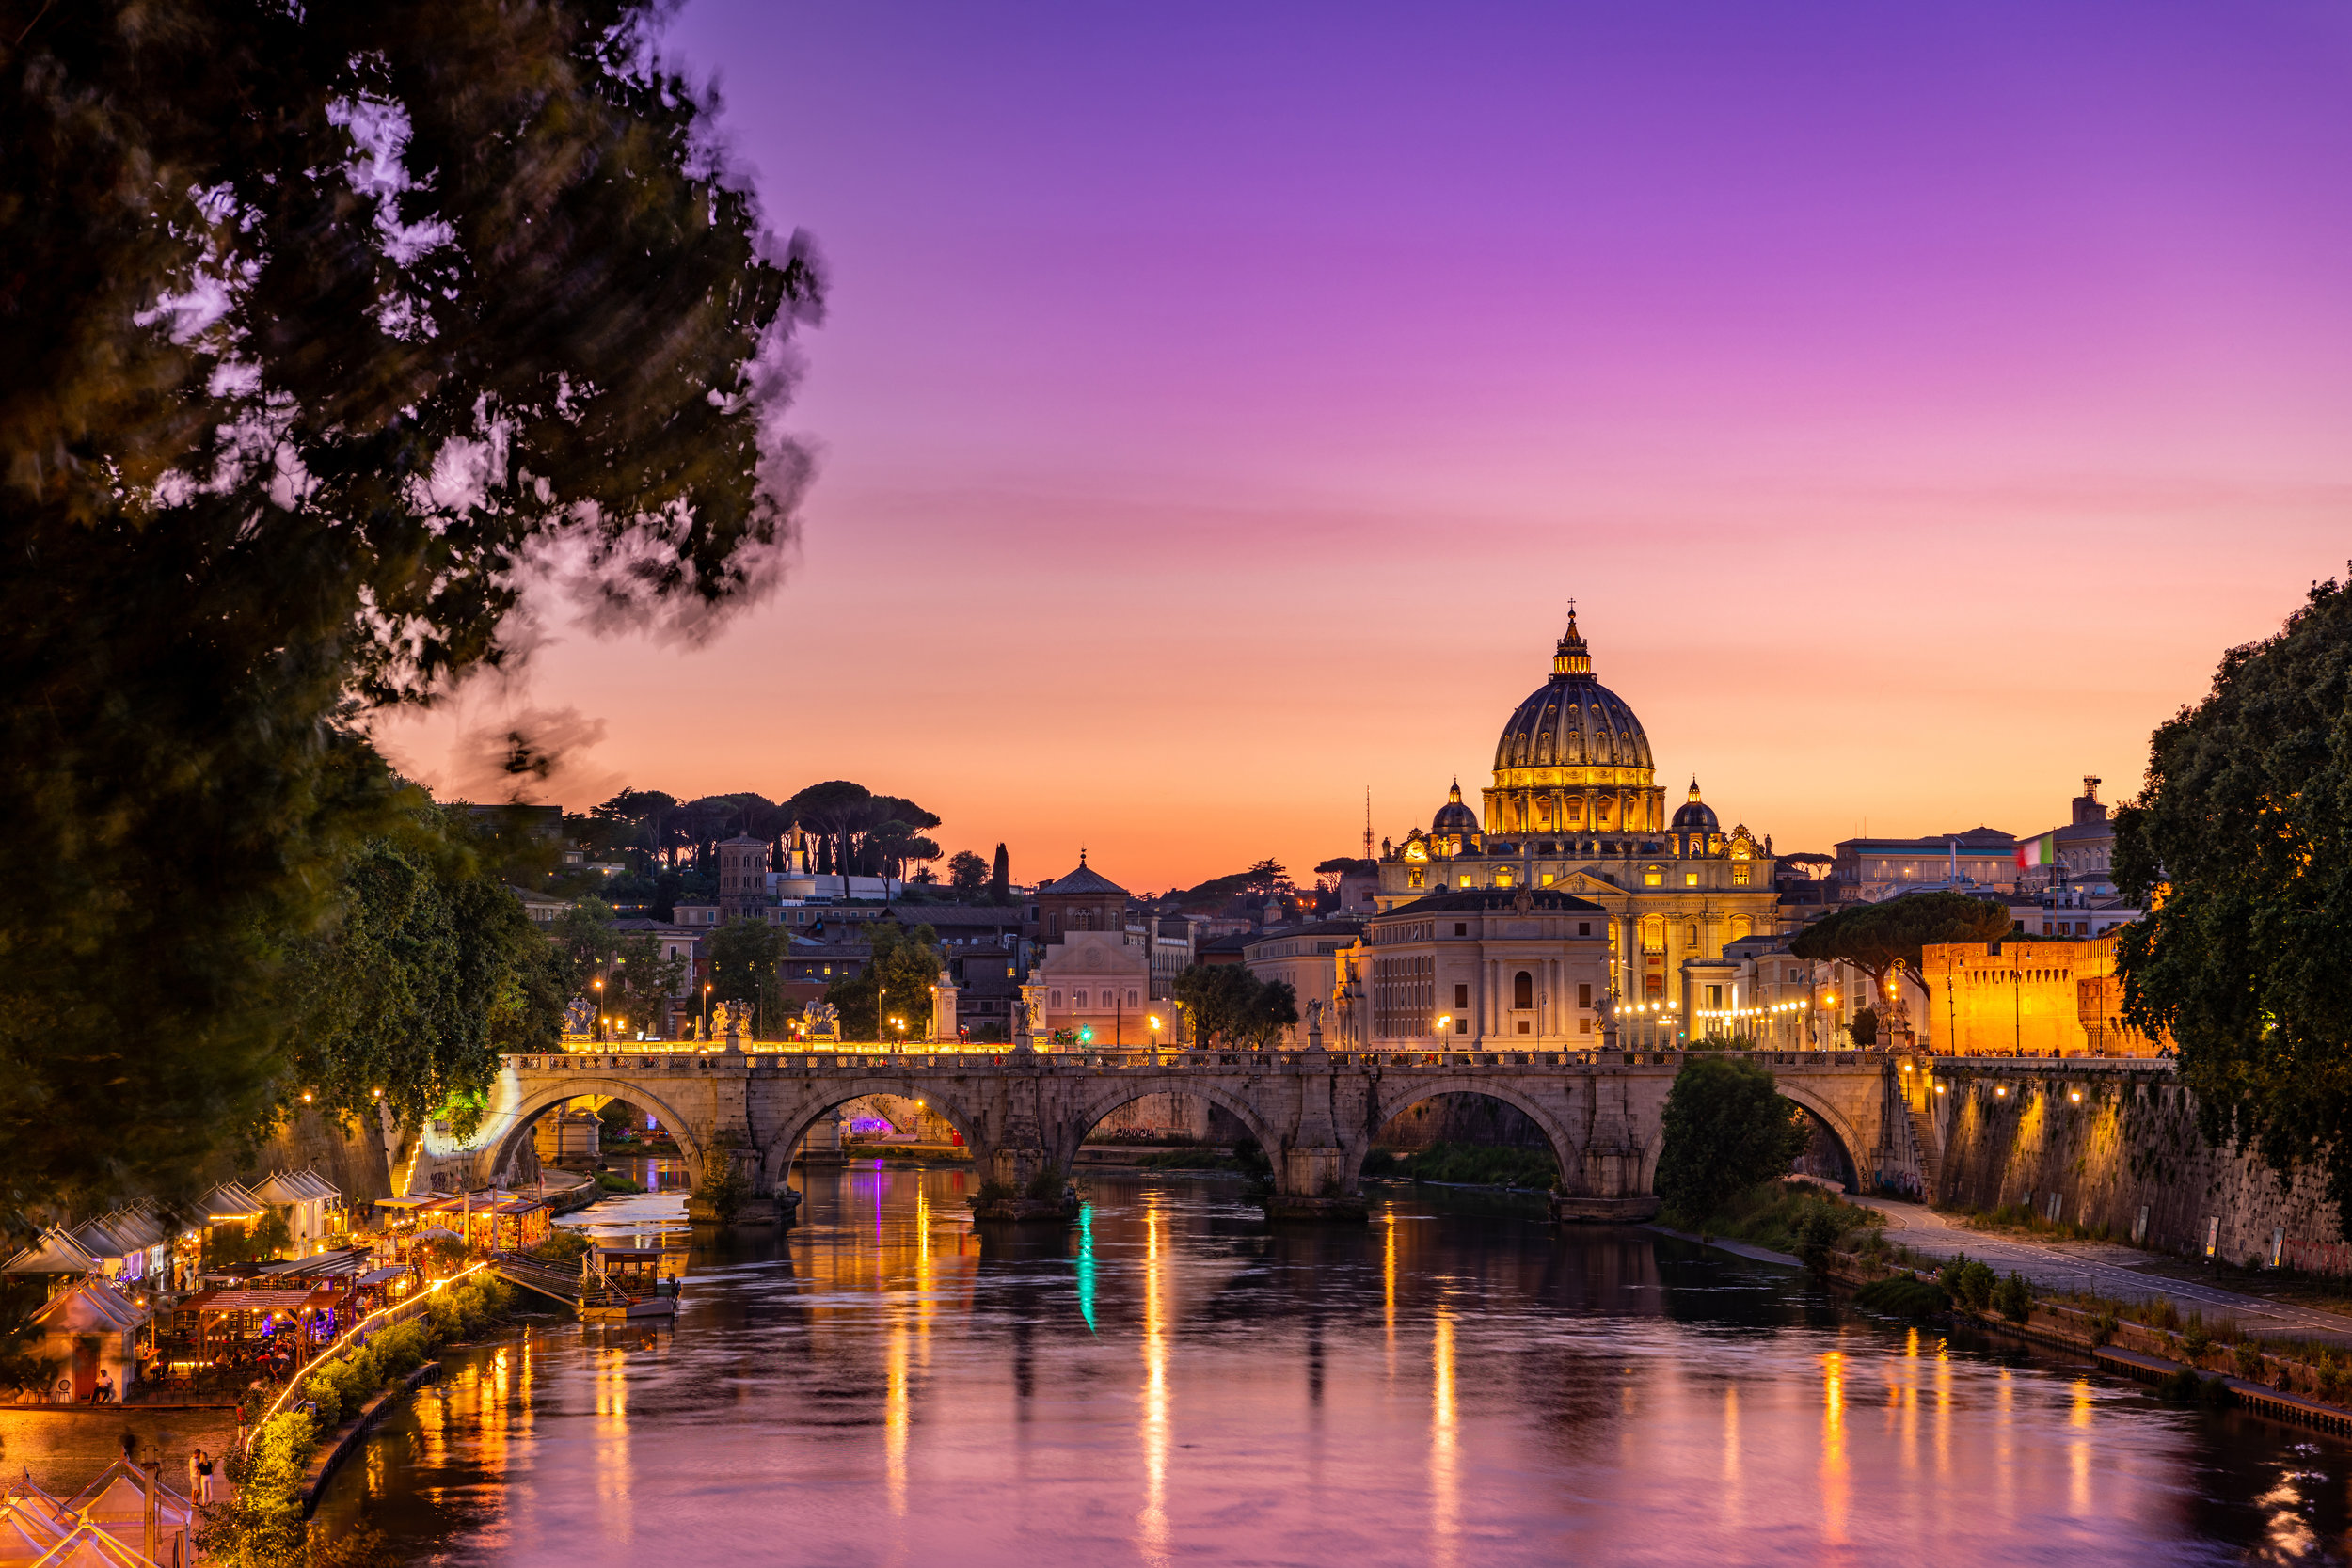 Vatican from Bridge FINAL-1sml.jpg